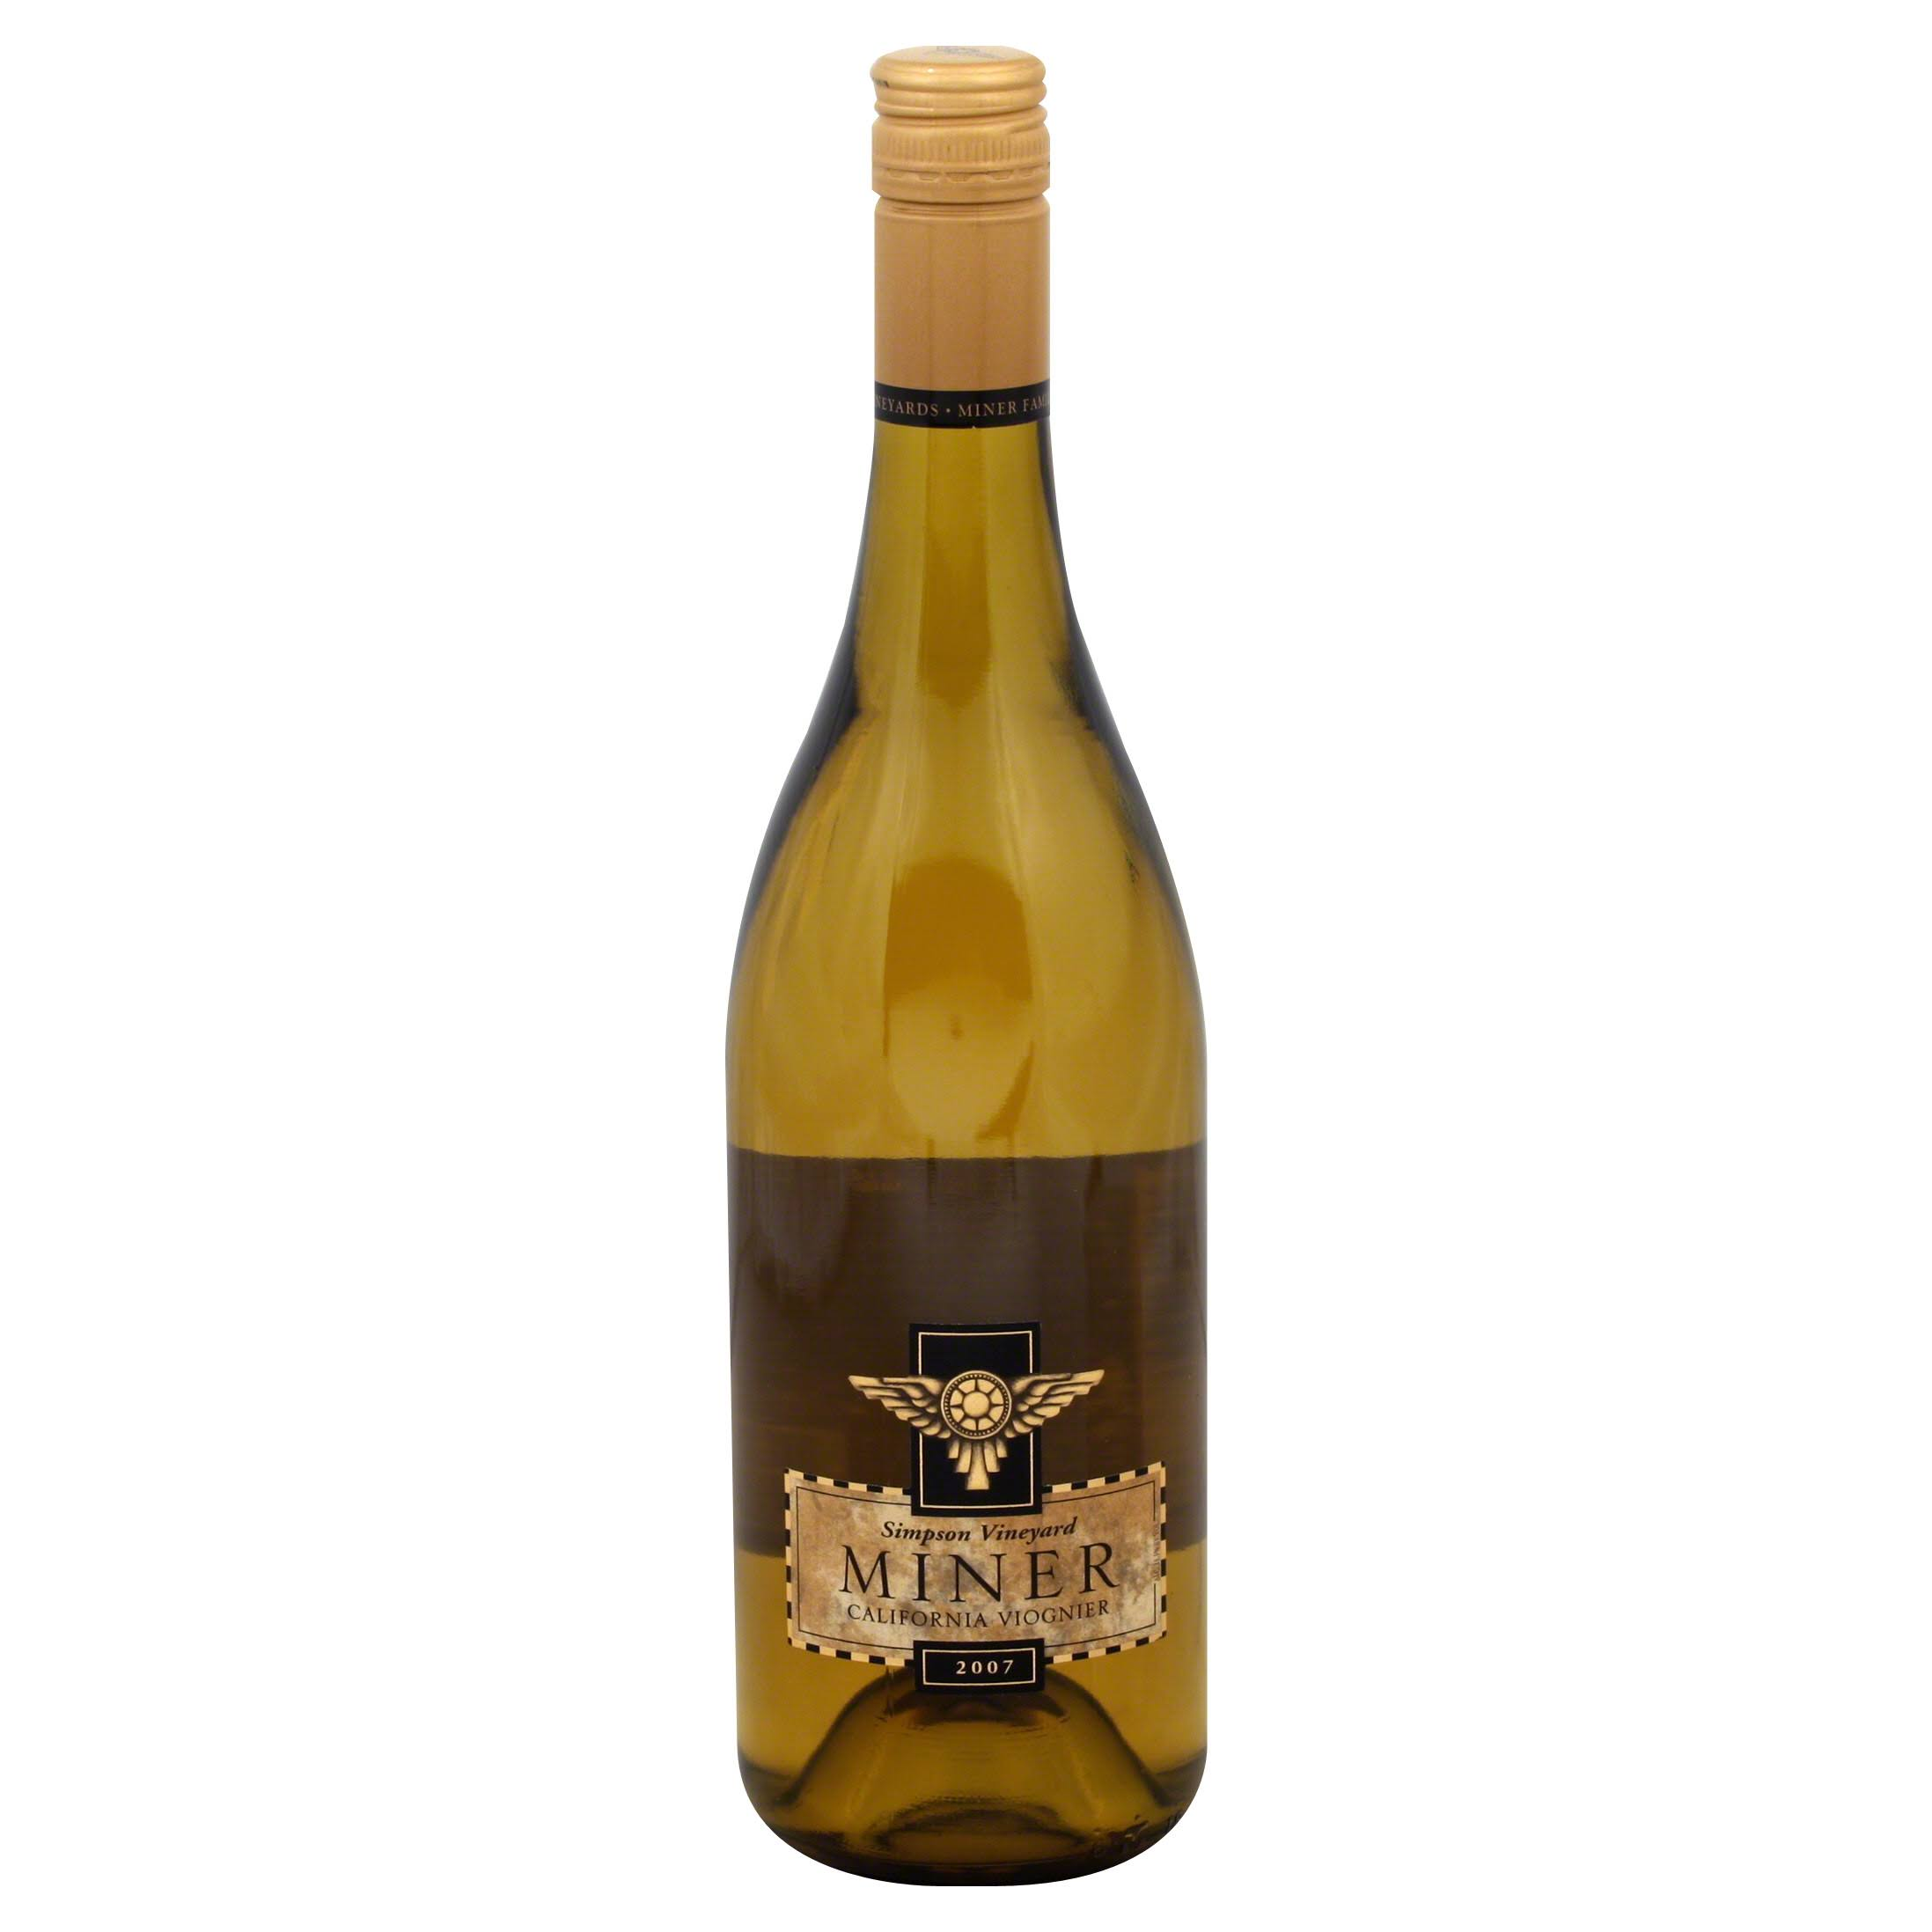 Miner Simpson Vineyard Viognier, California, 2007 - 750 ml